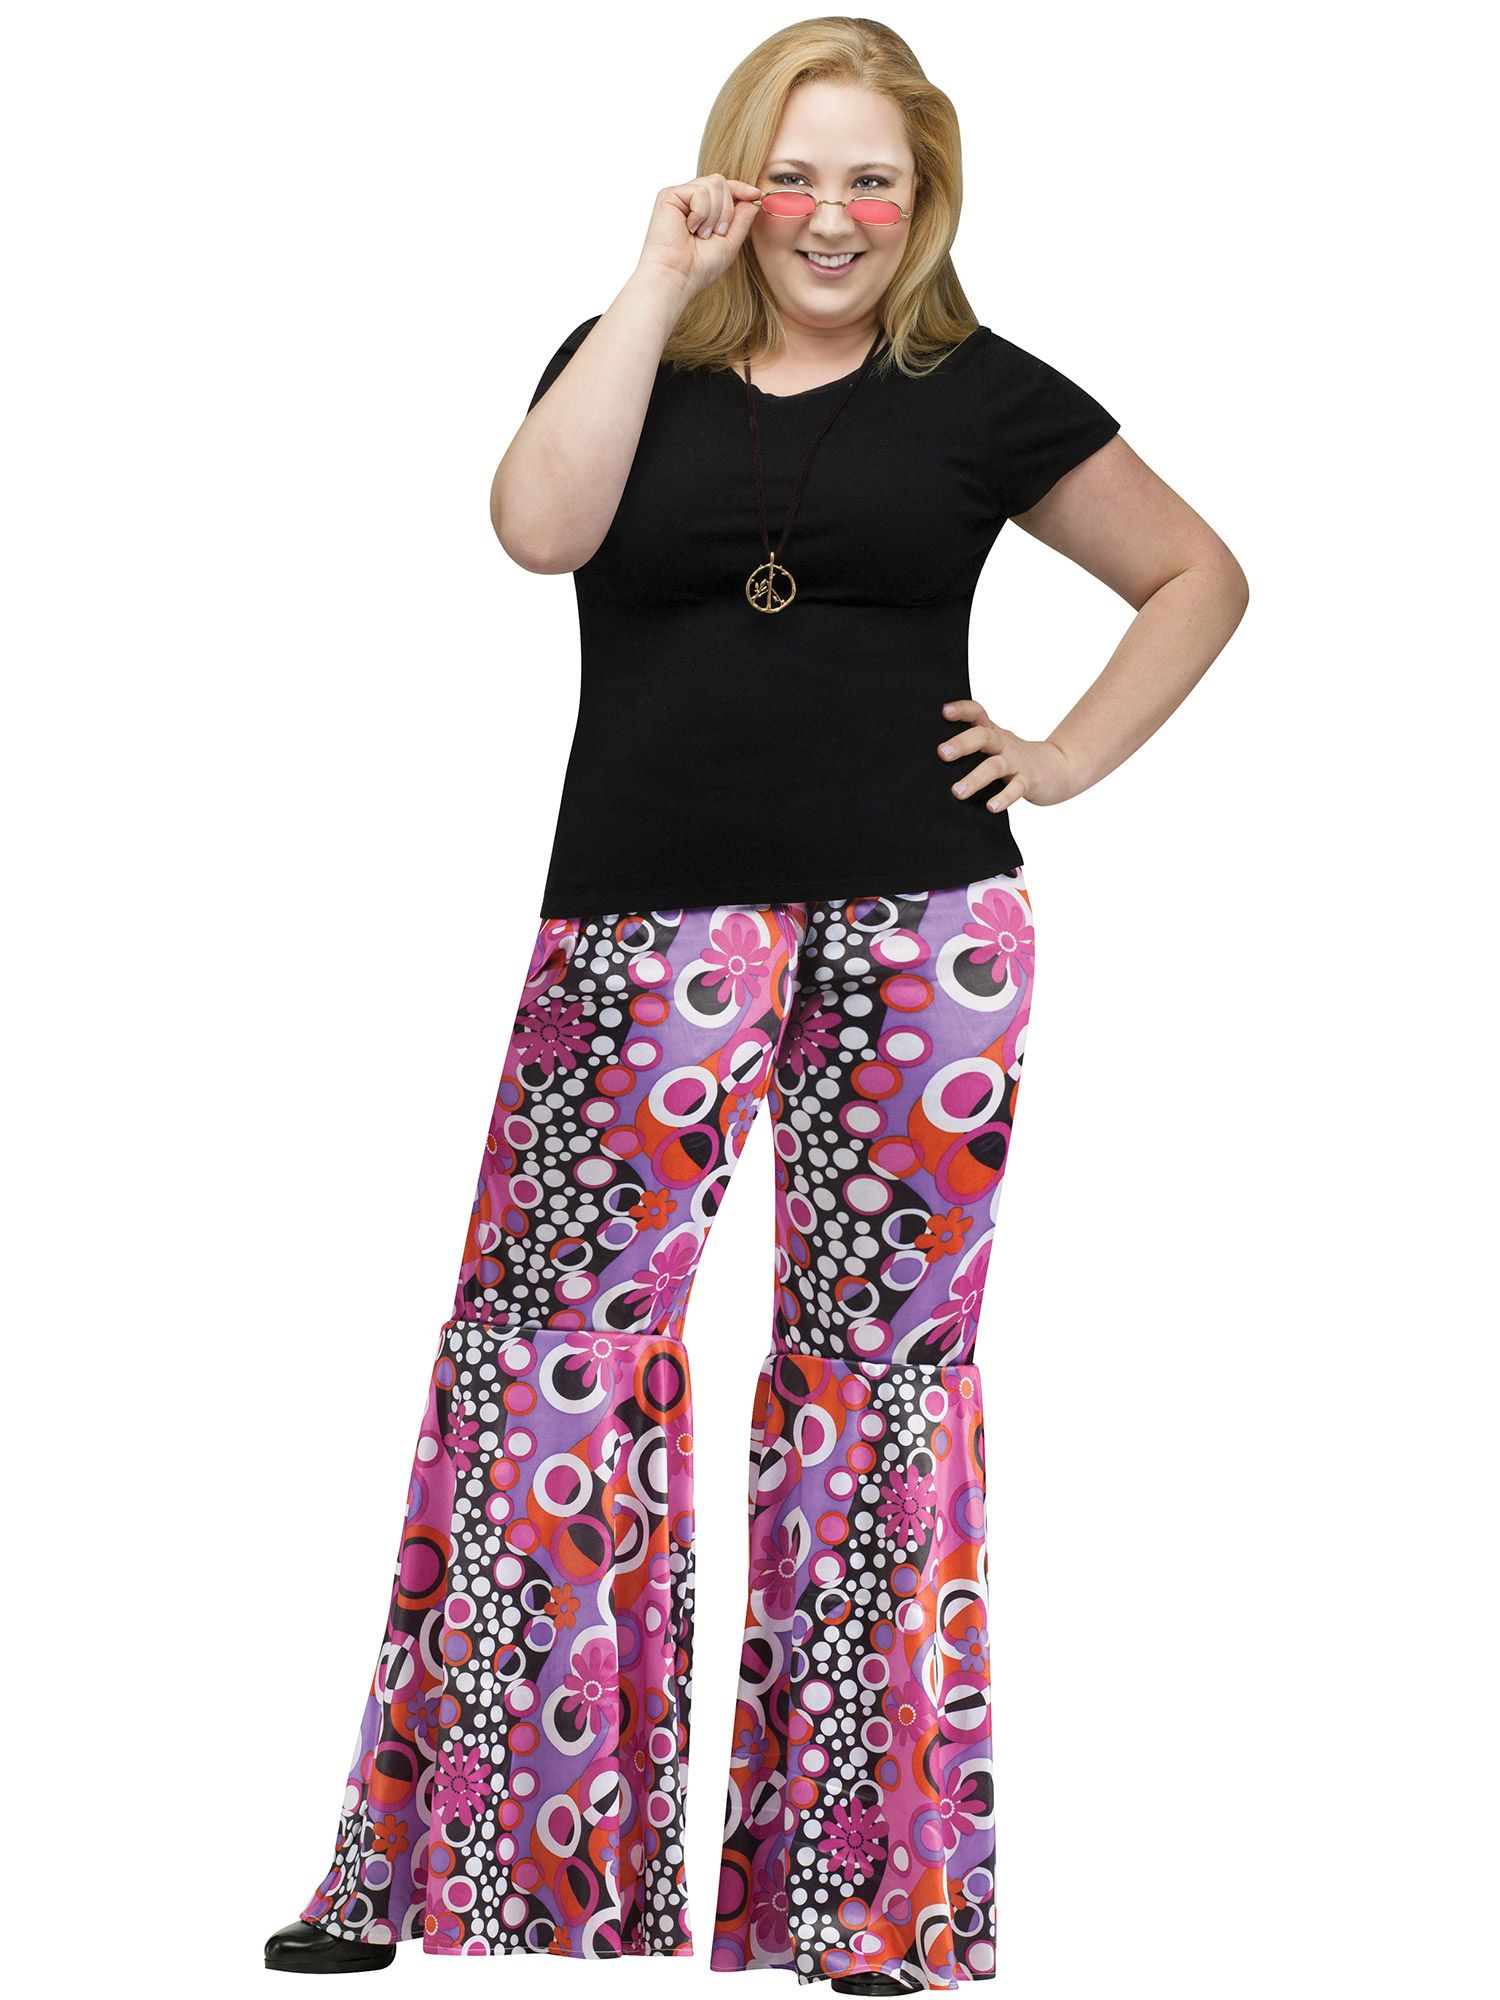 Plus Size Adult Plus Size Flower Child Bell Bottoms Costume - Walmart.com